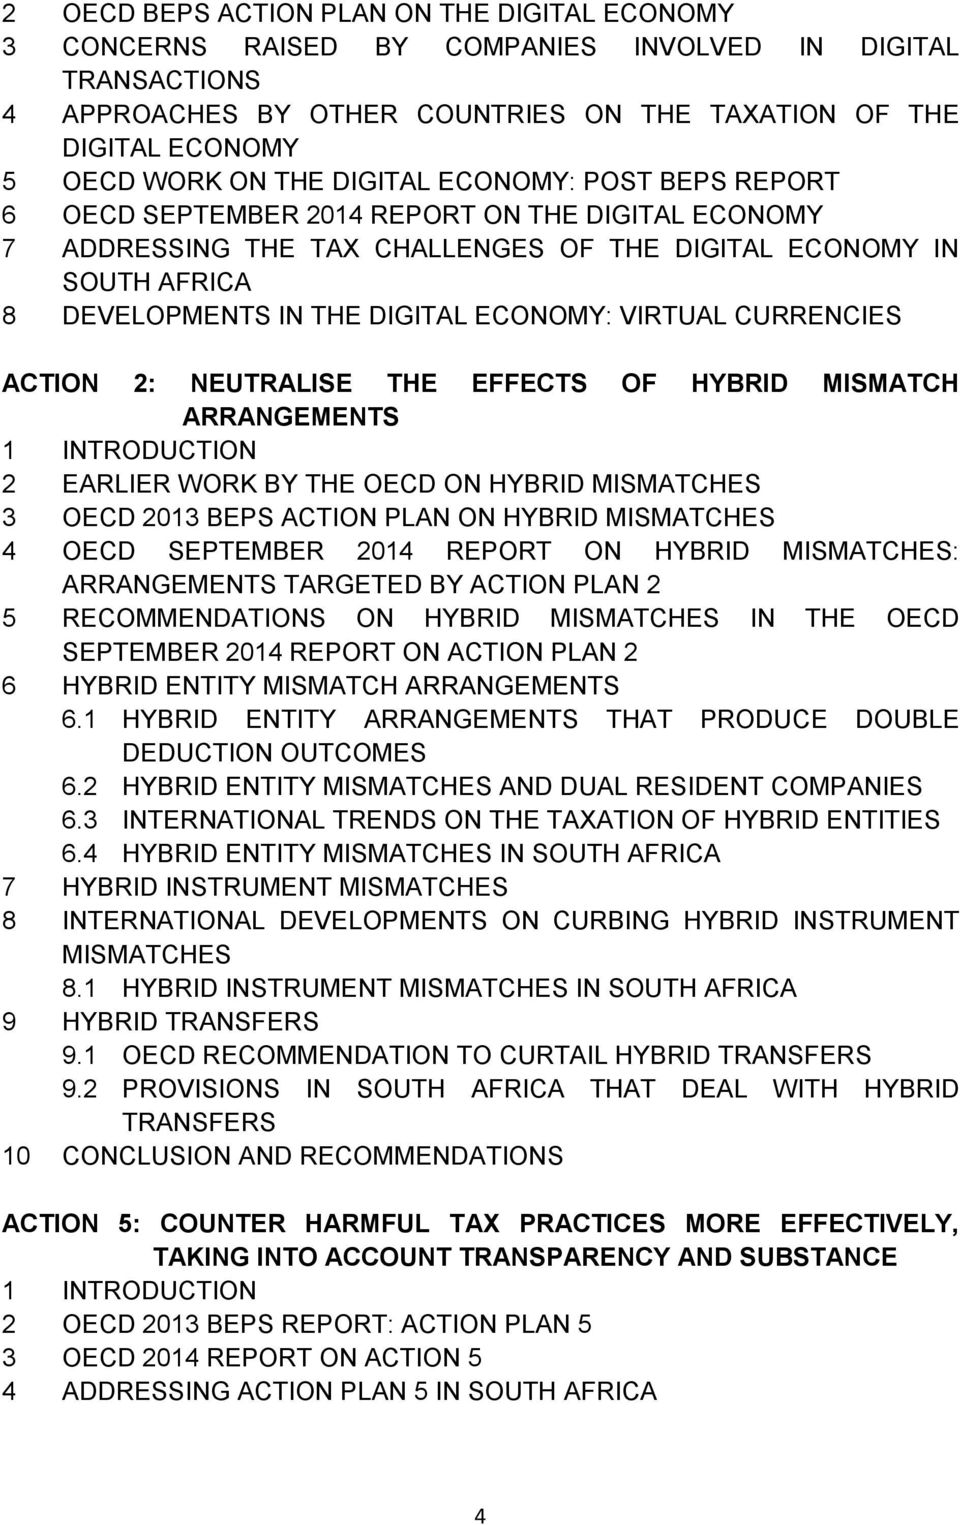 VIRTUAL CURRENCIES ACTION 2: NEUTRALISE THE EFFECTS OF HYBRID MISMATCH ARRANGEMENTS 1 INTRODUCTION 2 EARLIER WORK BY THE OECD ON HYBRID MISMATCHES 3 OECD 2013 BEPS ACTION PLAN ON HYBRID MISMATCHES 4